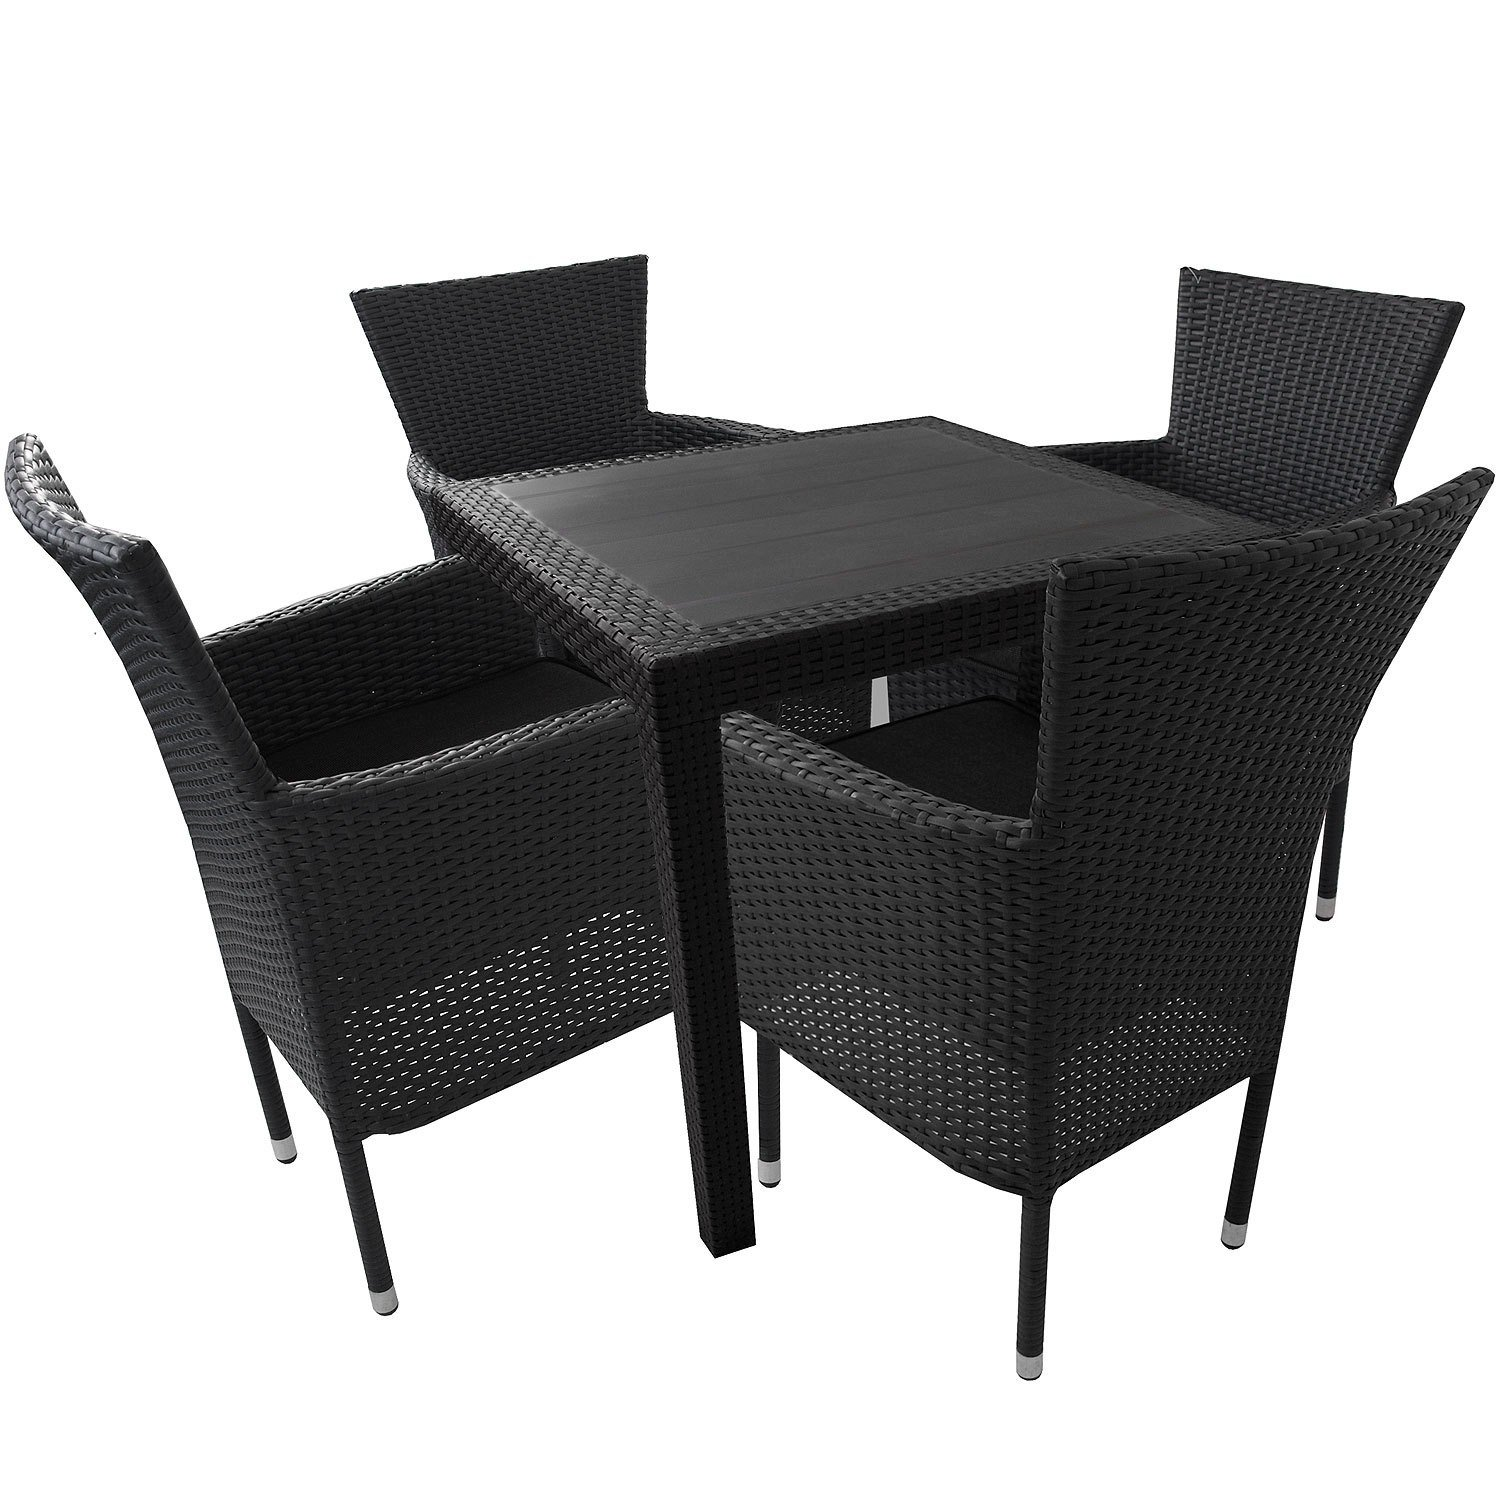 5tlg balkonm bel set gartentisch vollkunststoff rattan optik 79x79cm poly rattan gartensessel. Black Bedroom Furniture Sets. Home Design Ideas